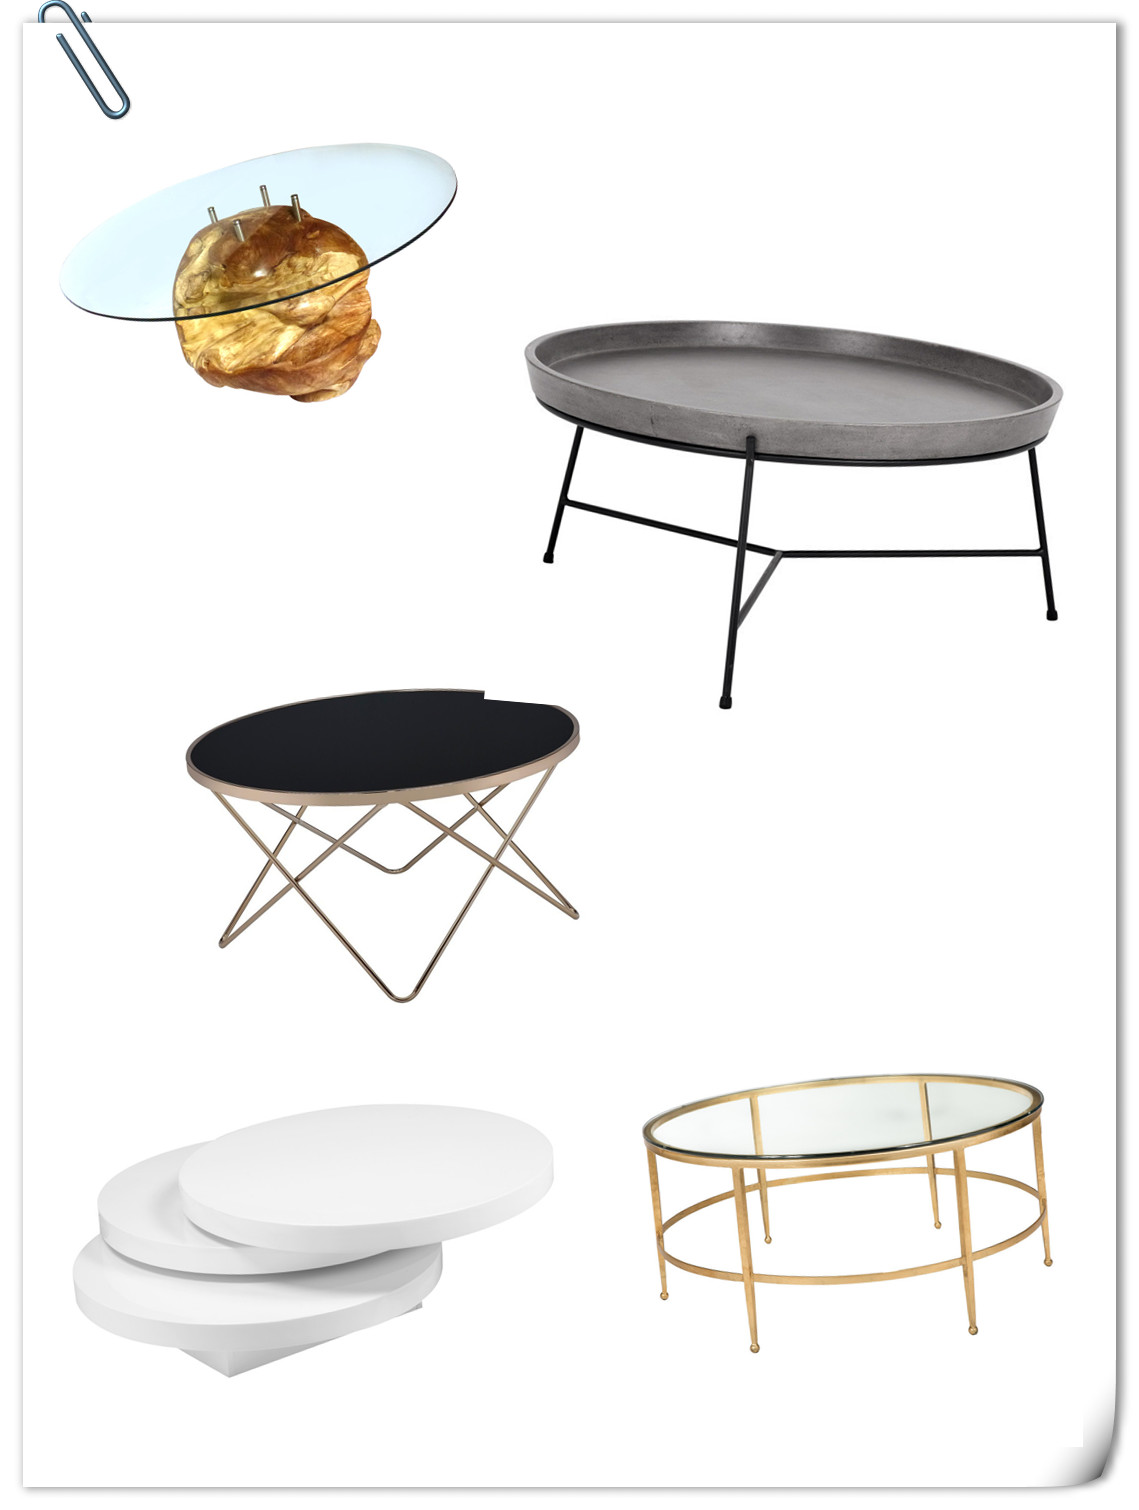 7 Best Round Coffee Tables You Love to Have